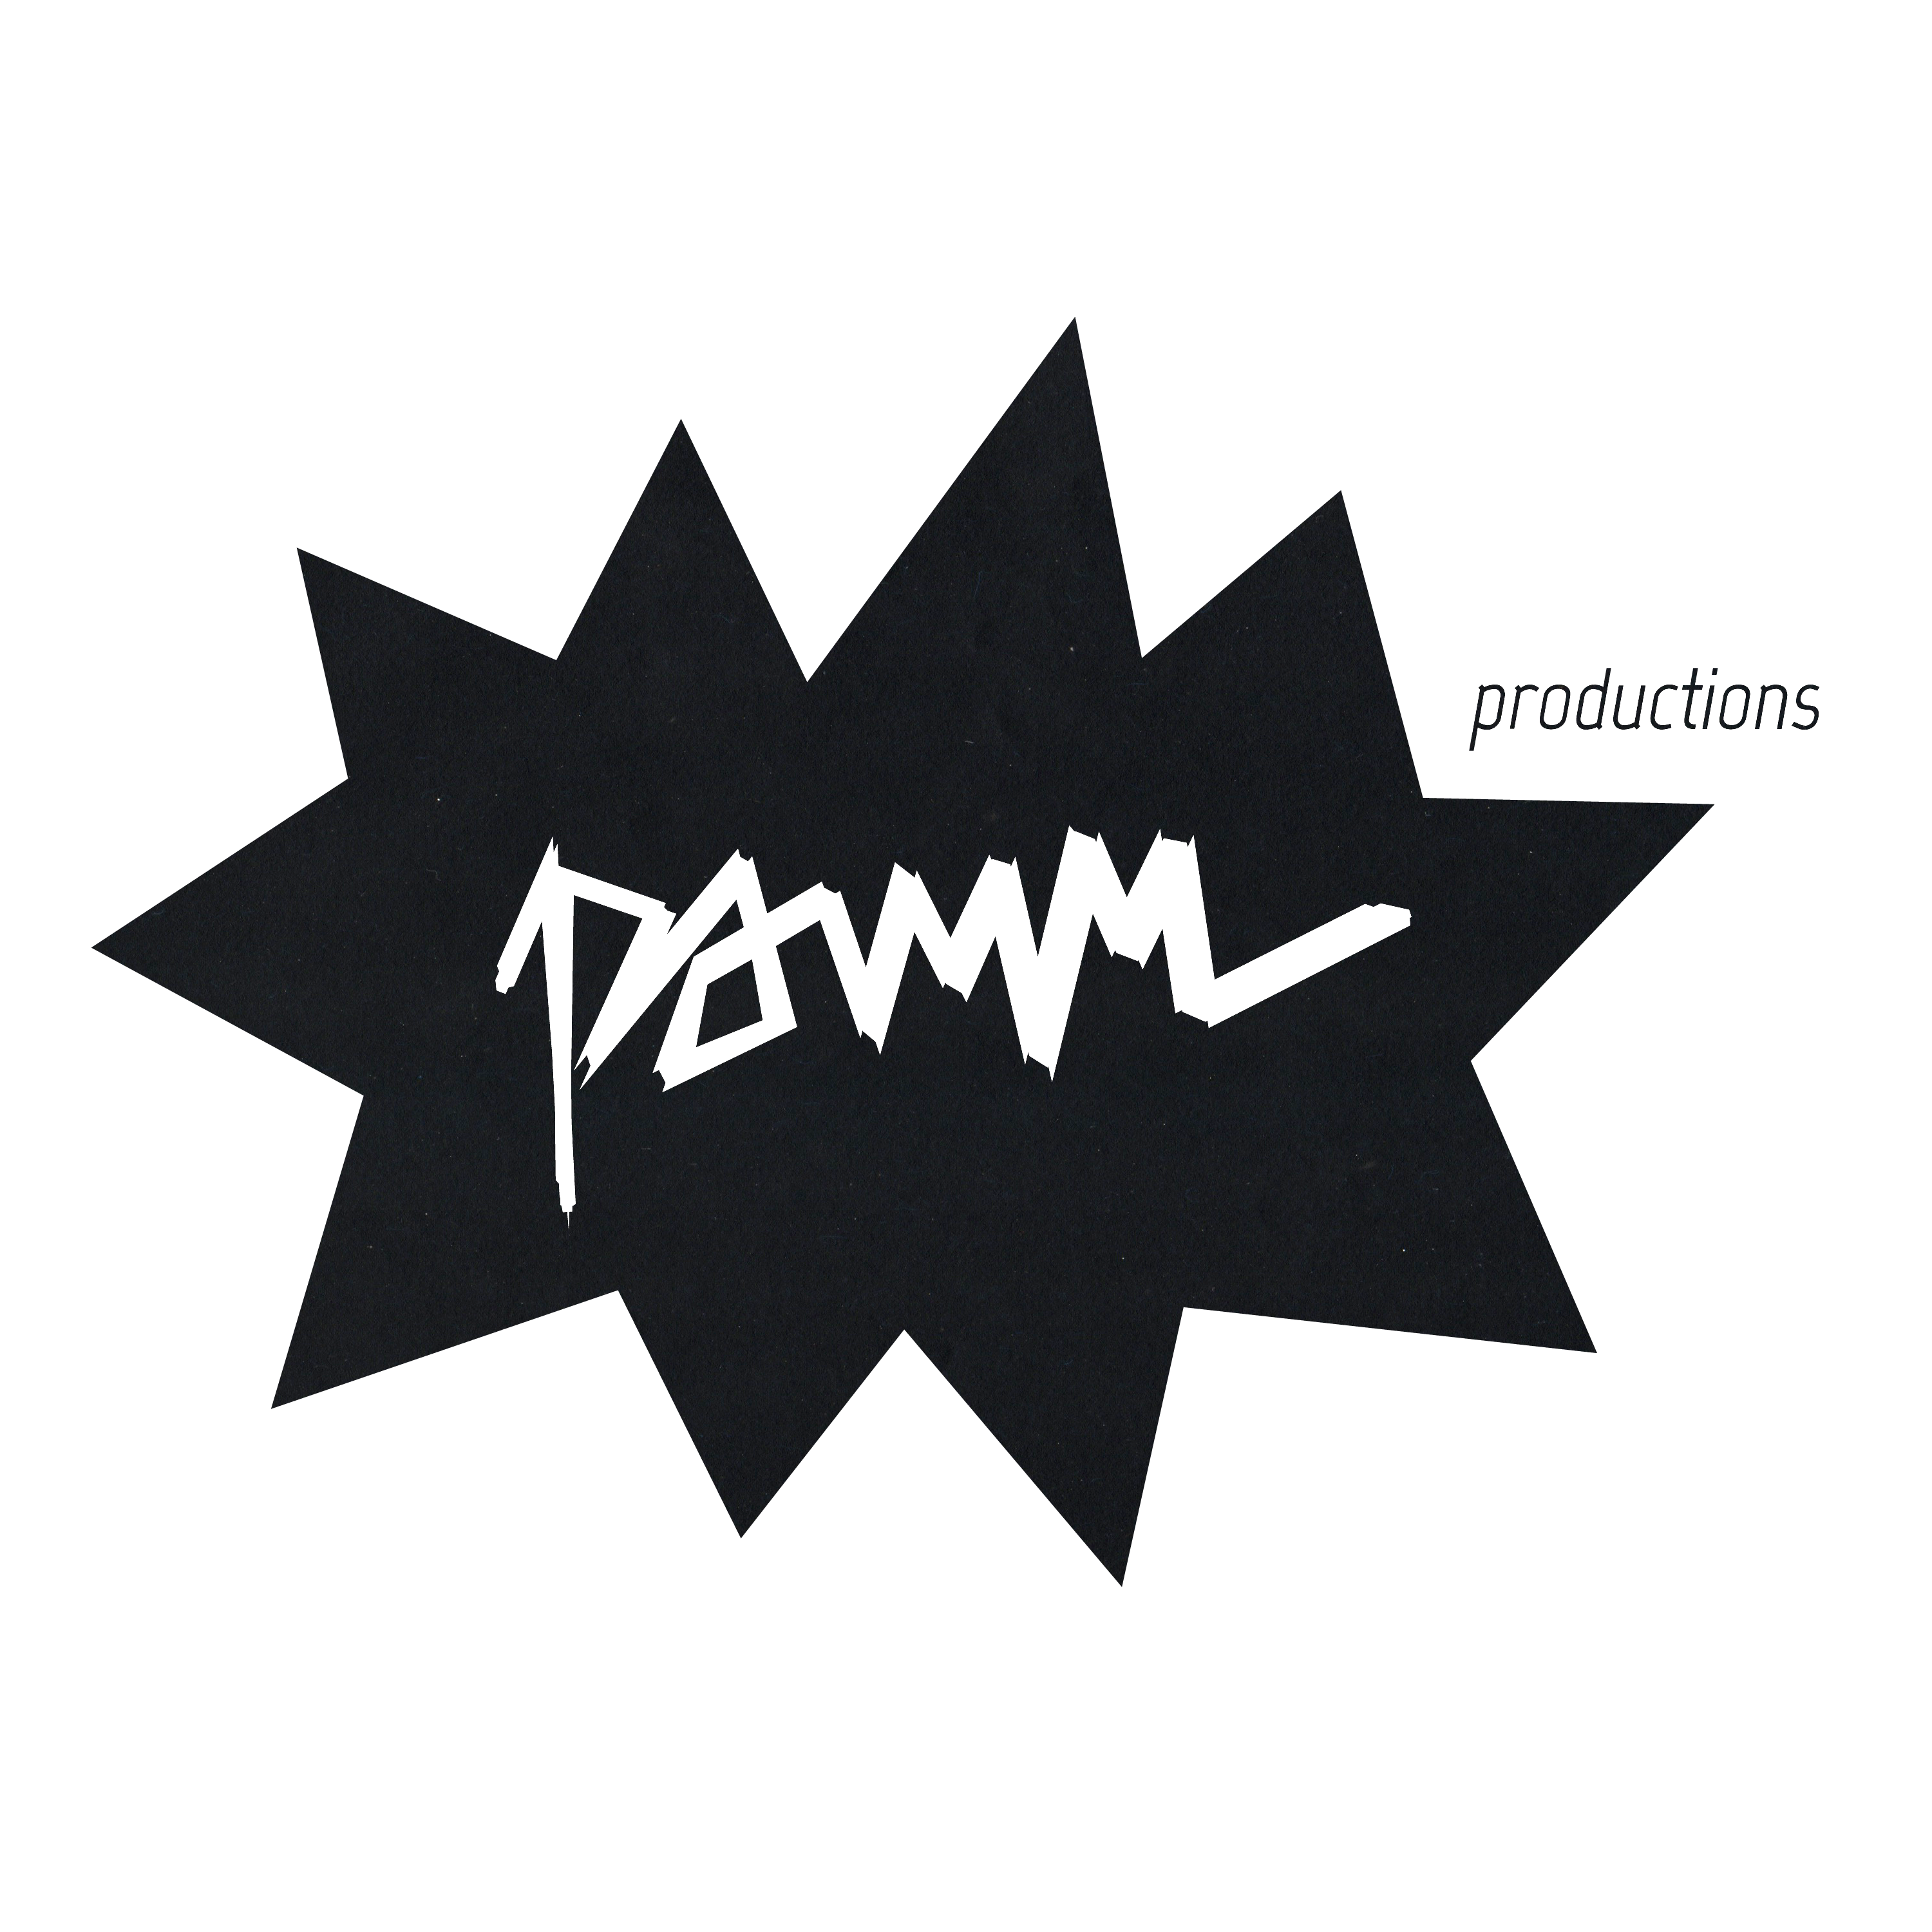 PAMM Productions